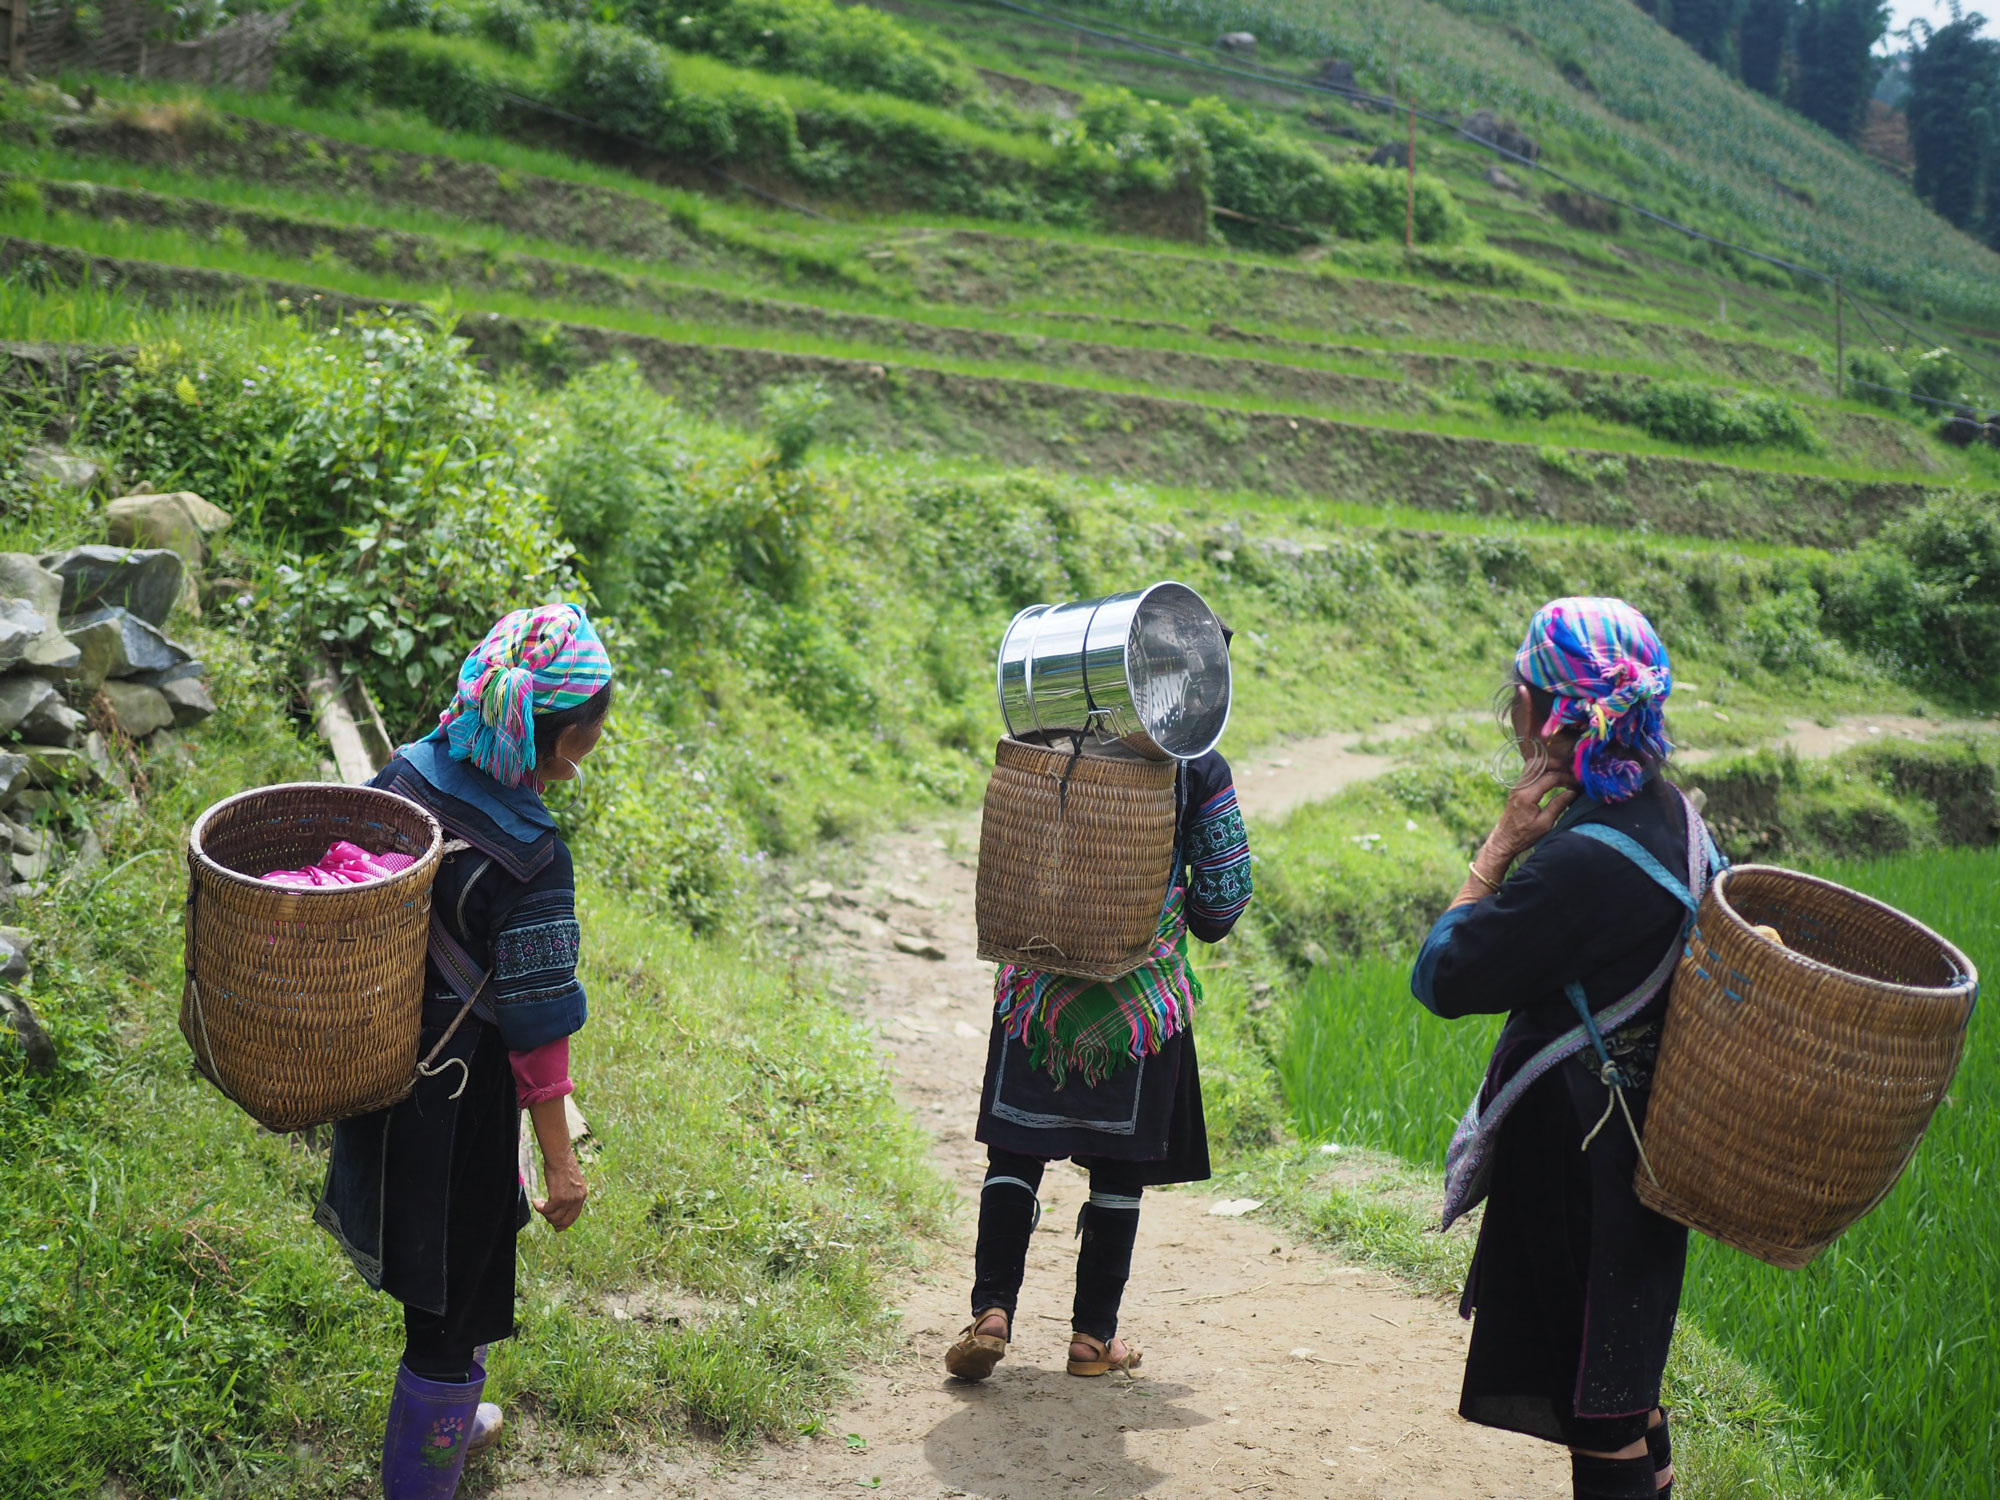 Three migrant women working in a rice field